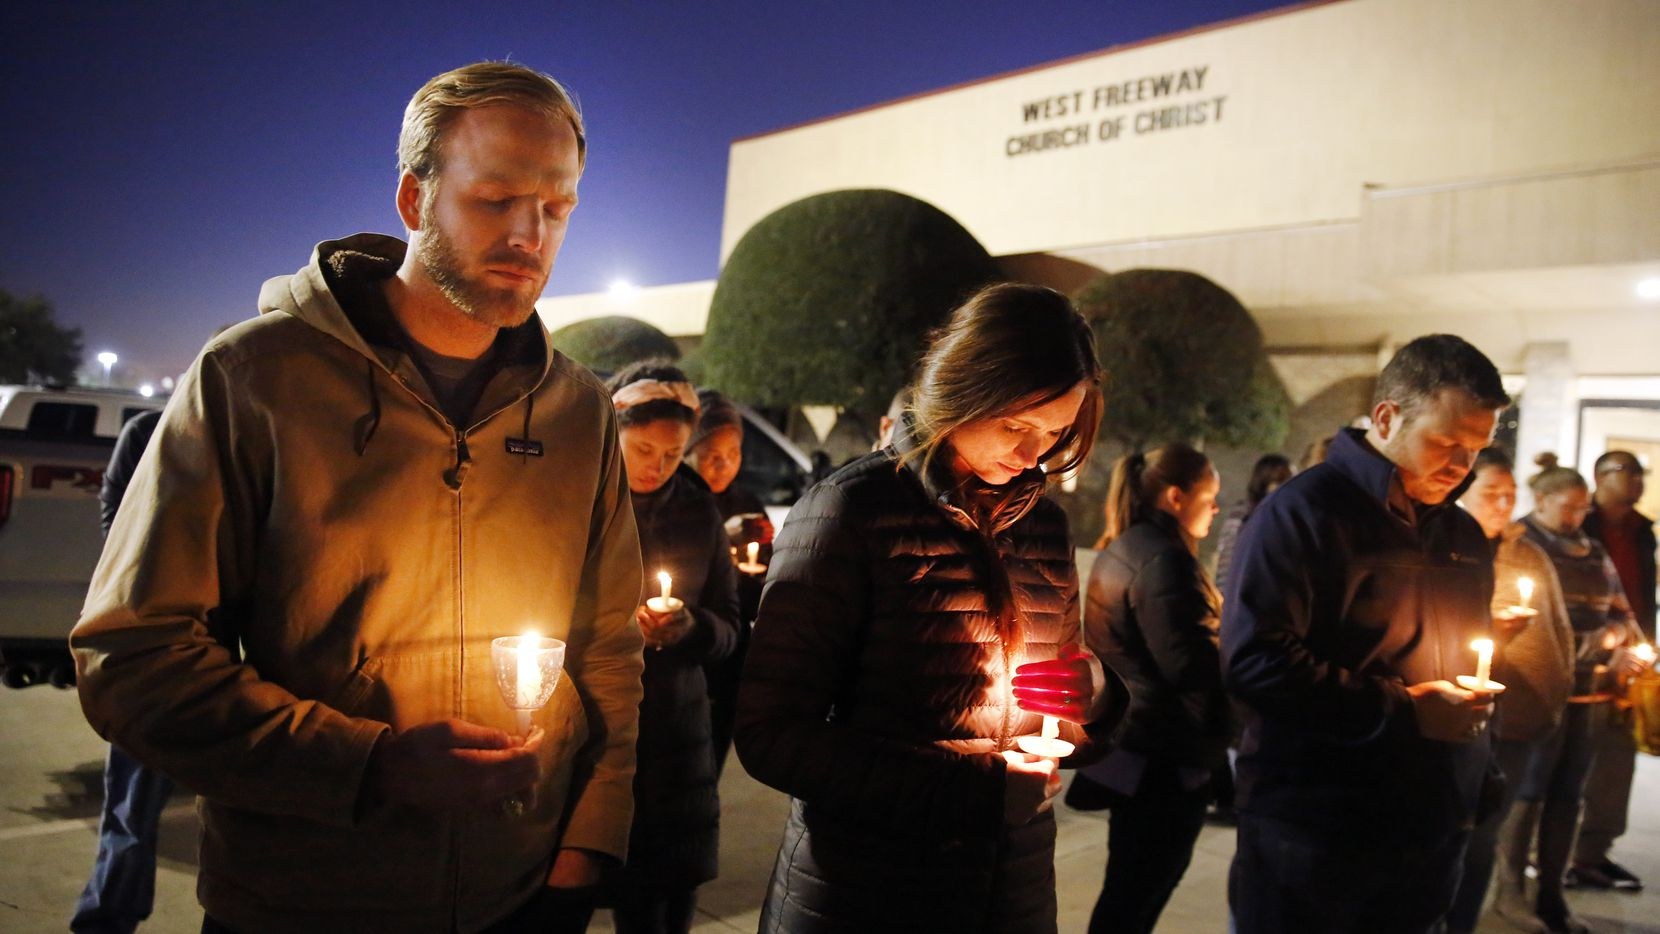 Church and community members, including Matt Pacholczyk (left) and his wife, Faith Pacholczyk, gathered outside the West Freeway Church of Christ in Fort Worth for a candlelight vigil Monday evening.